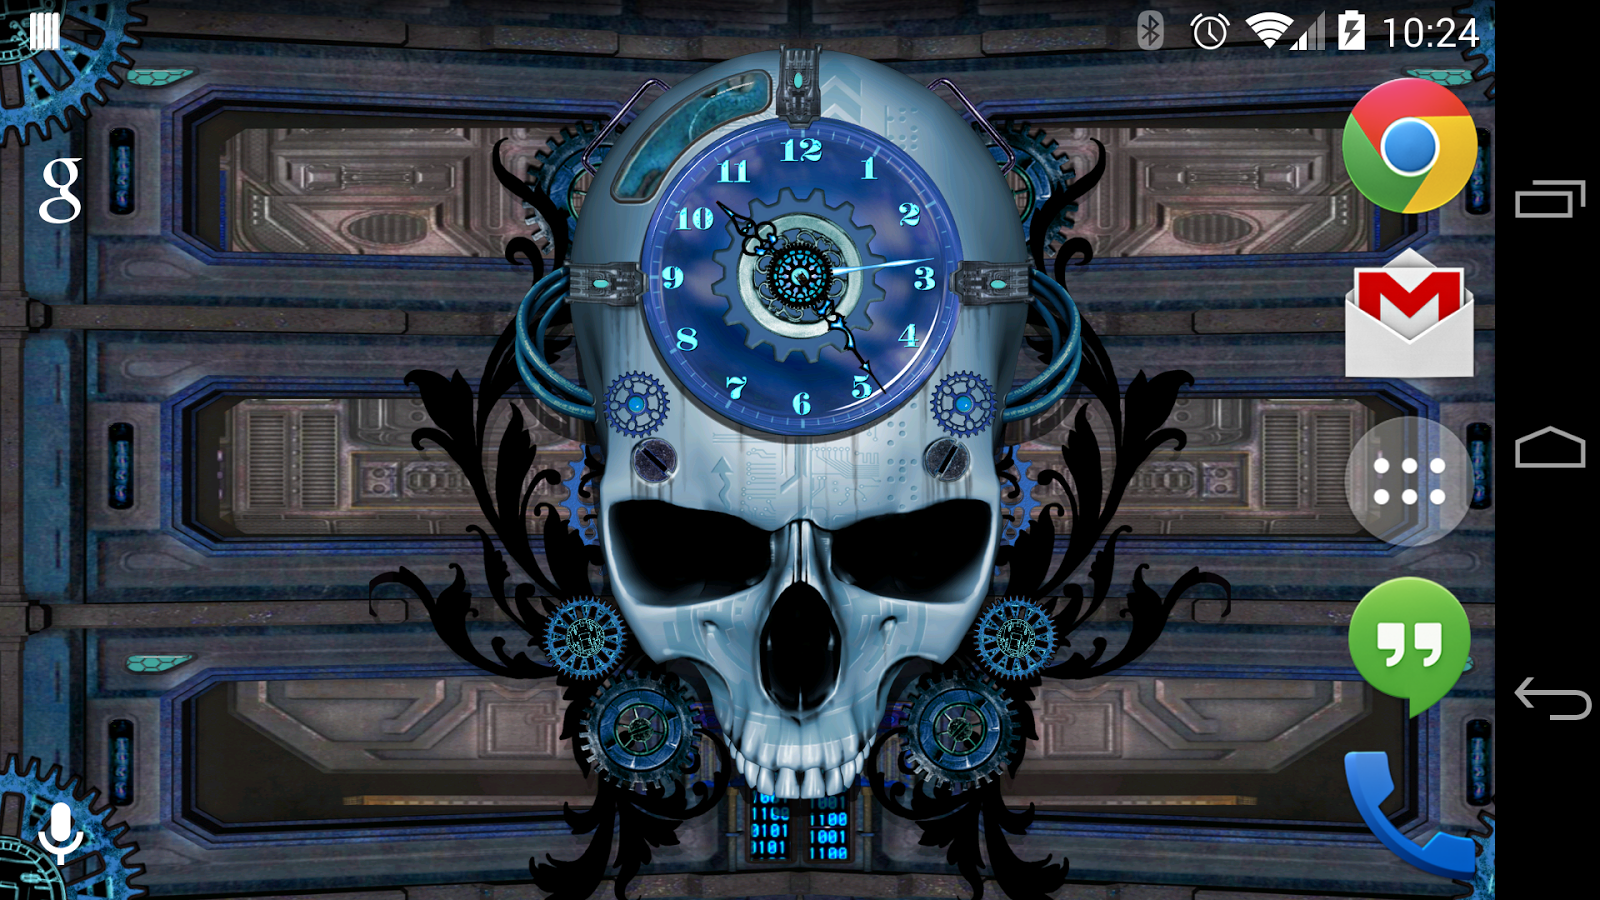 Steampunk Clock Free Wallpaper – Android Apps Auf Google Play